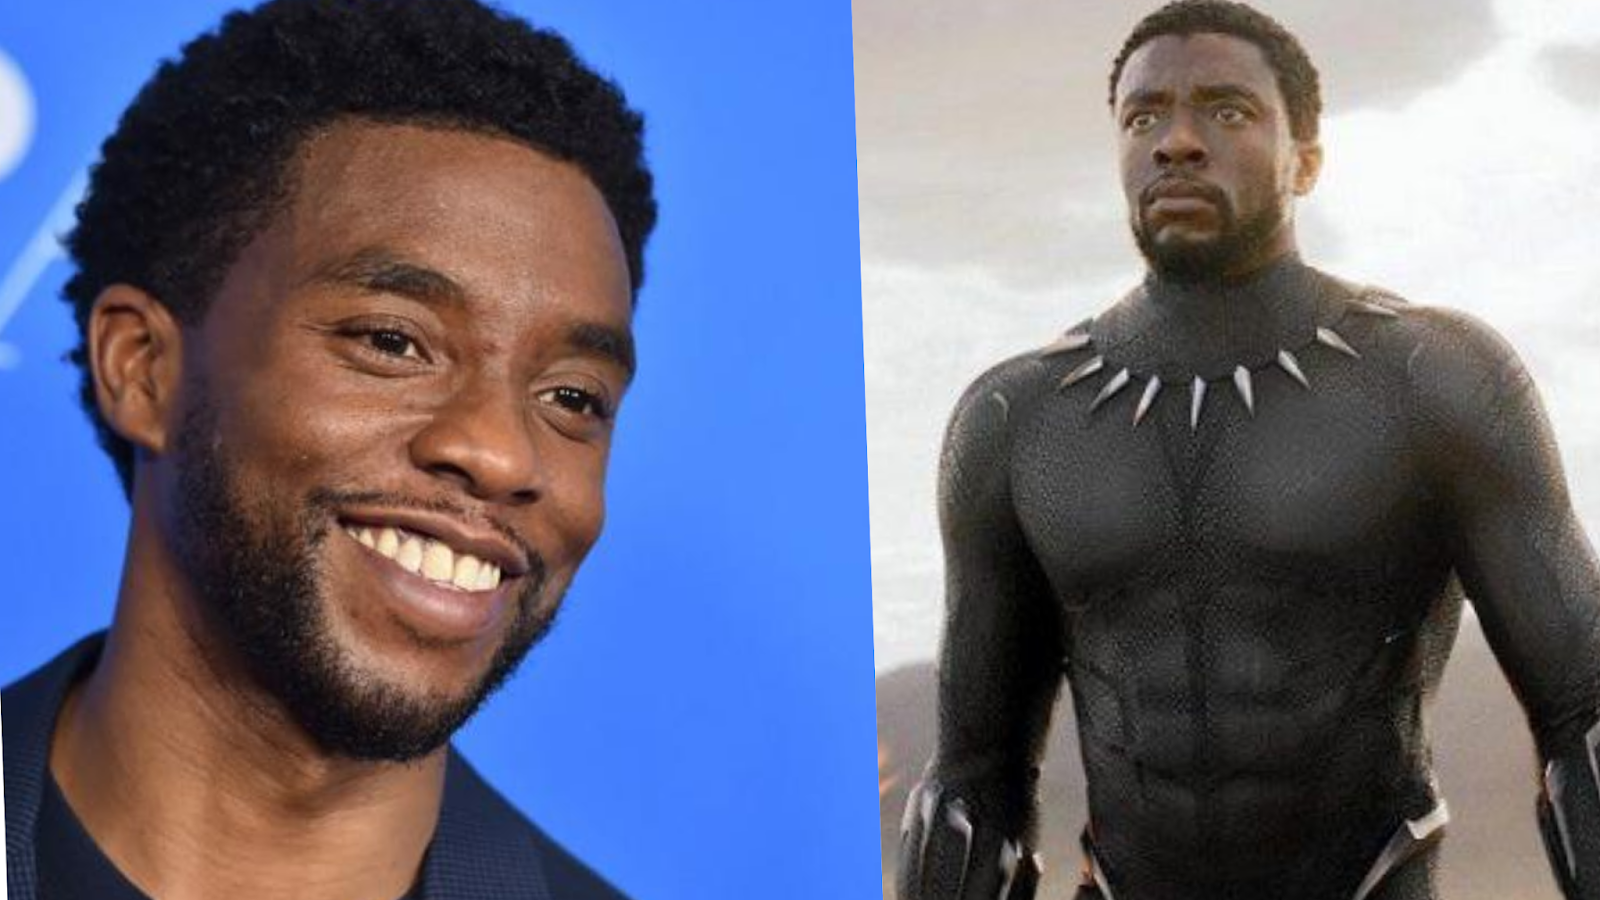 Black Panther star Chadwick Boseman dies due to cancer at 43